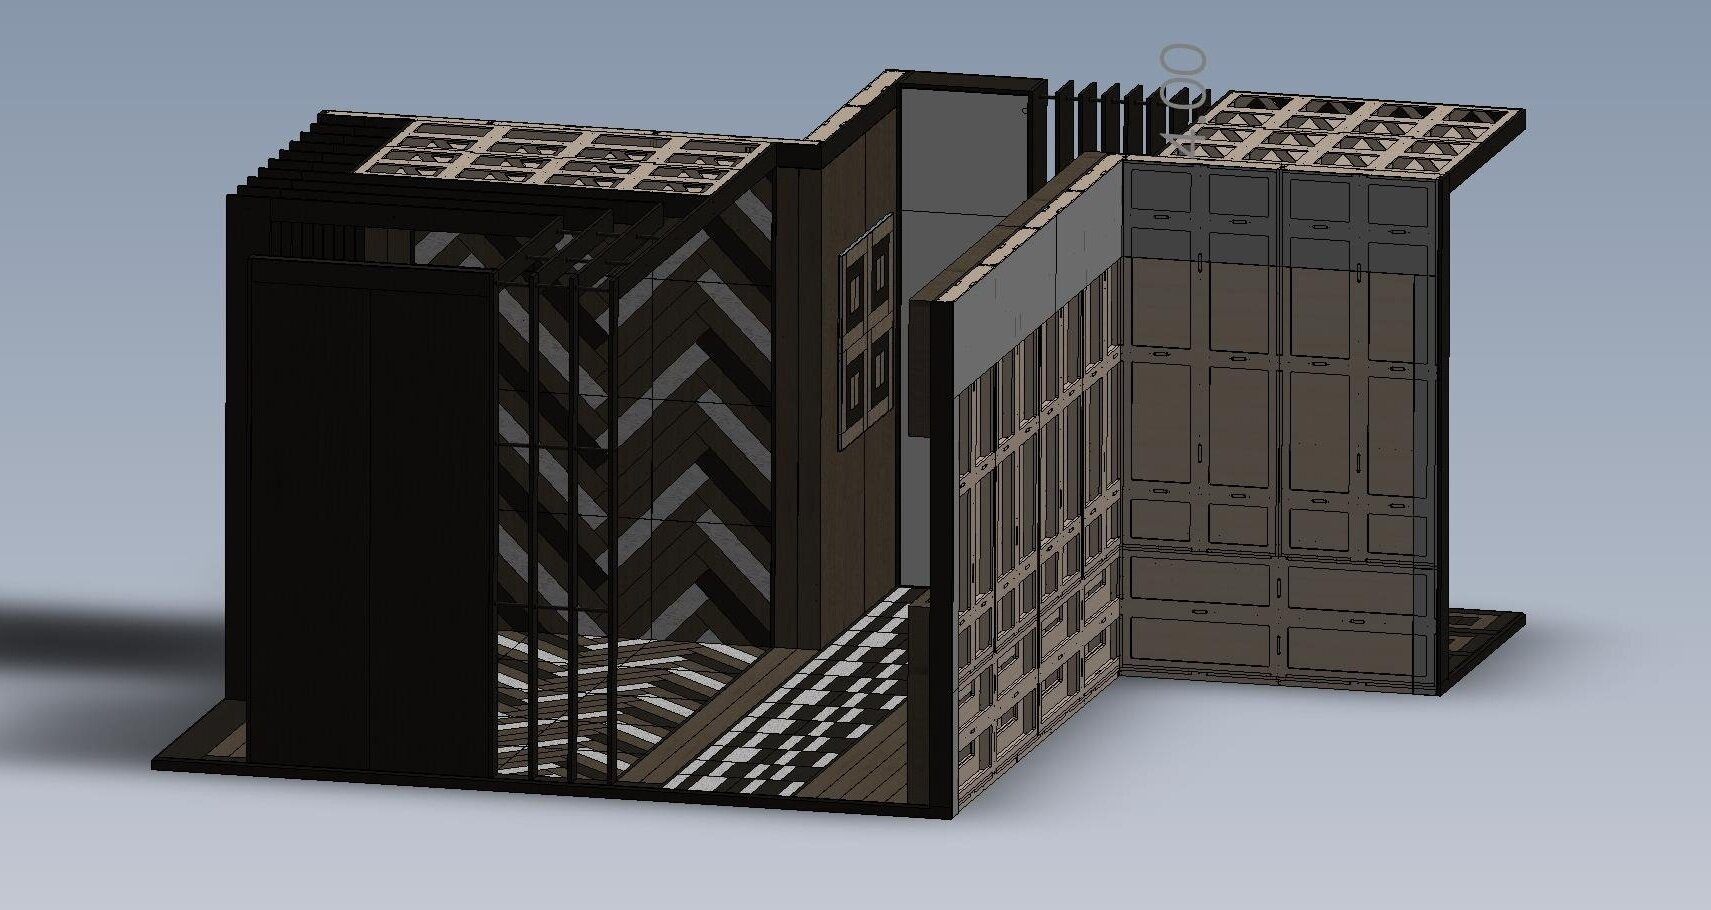 - View of model extracted from eDrawings